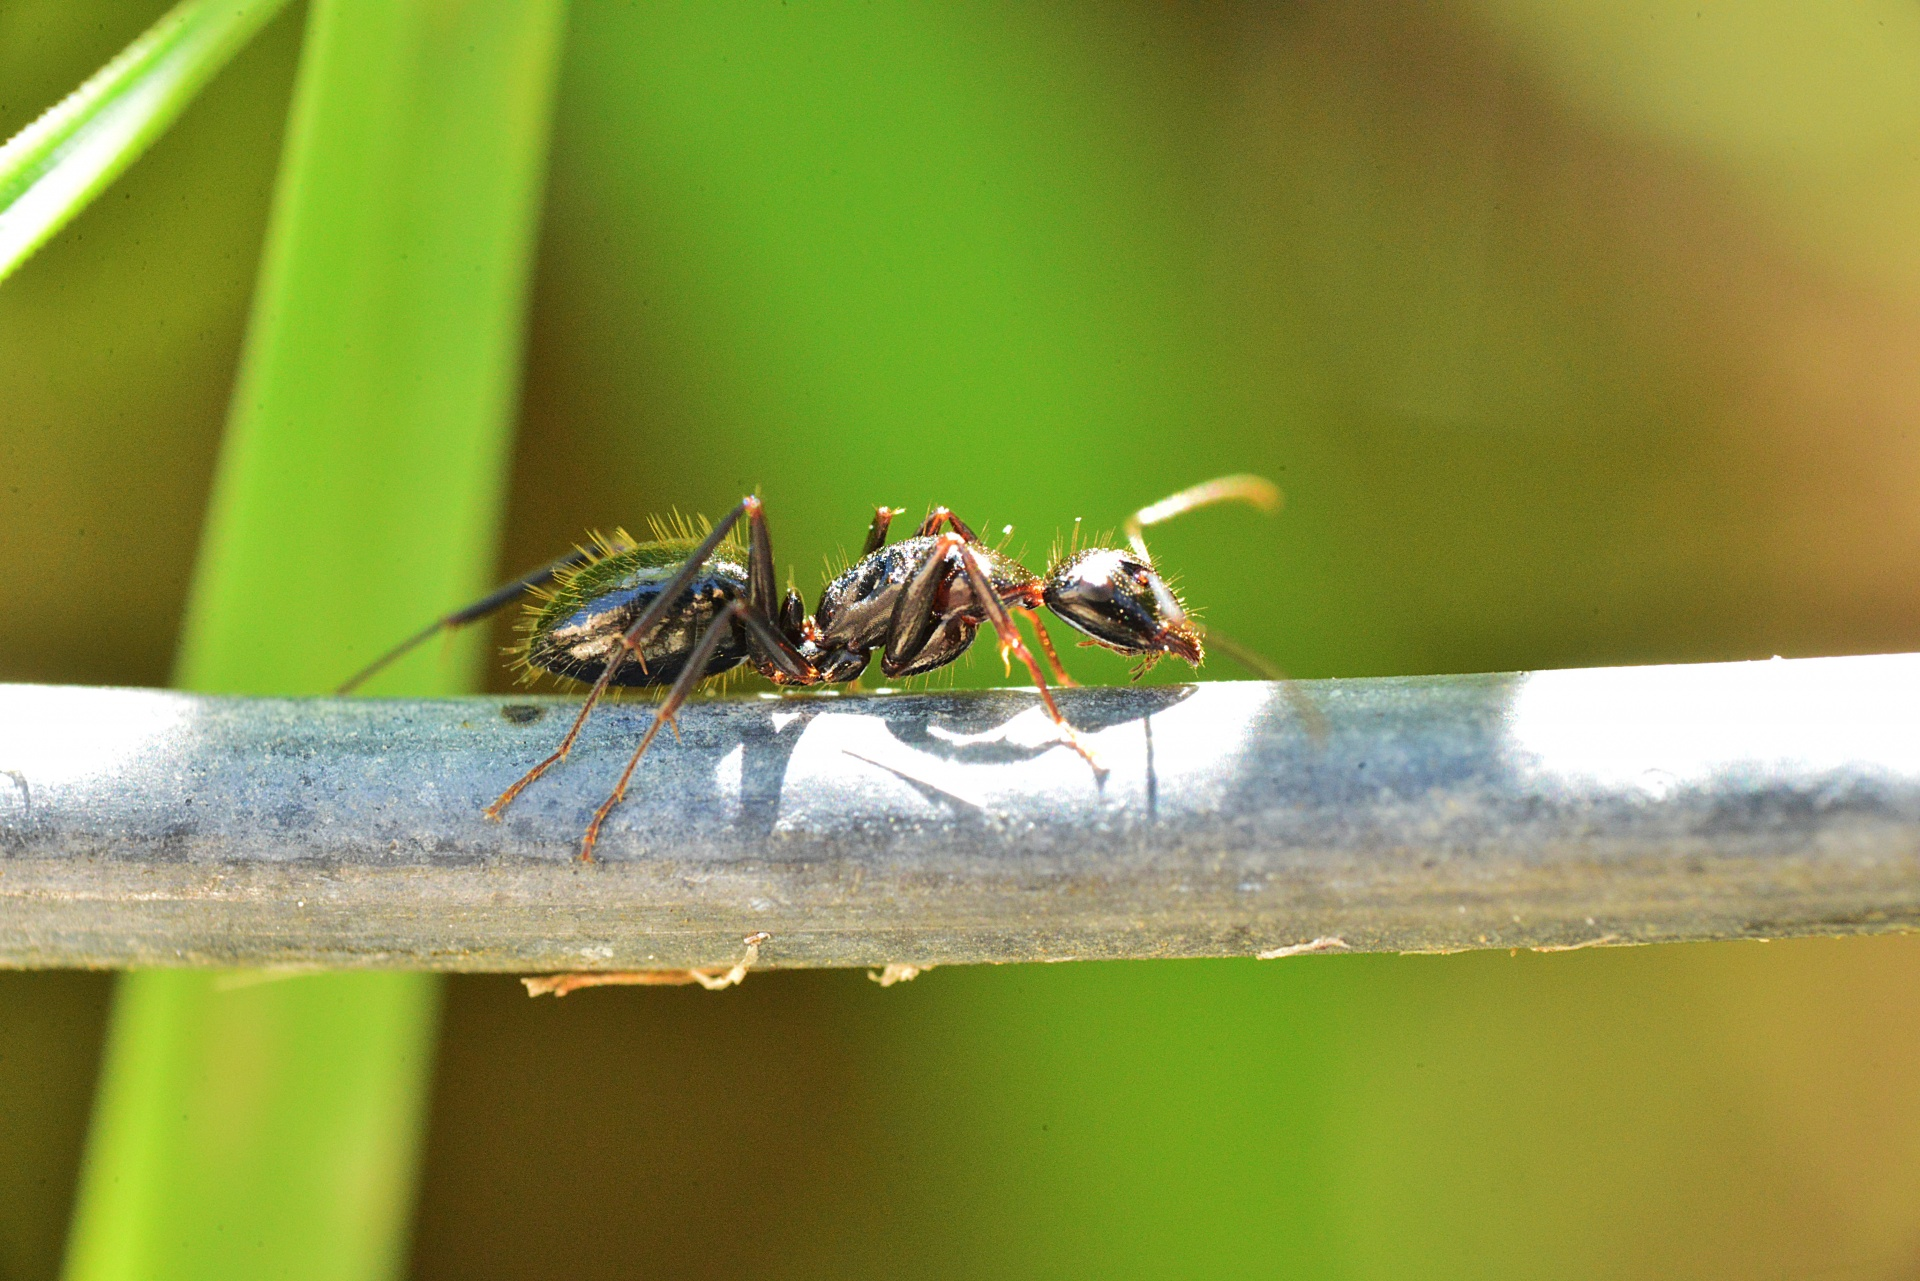 Essential Information on How to Get The Best Ant Control